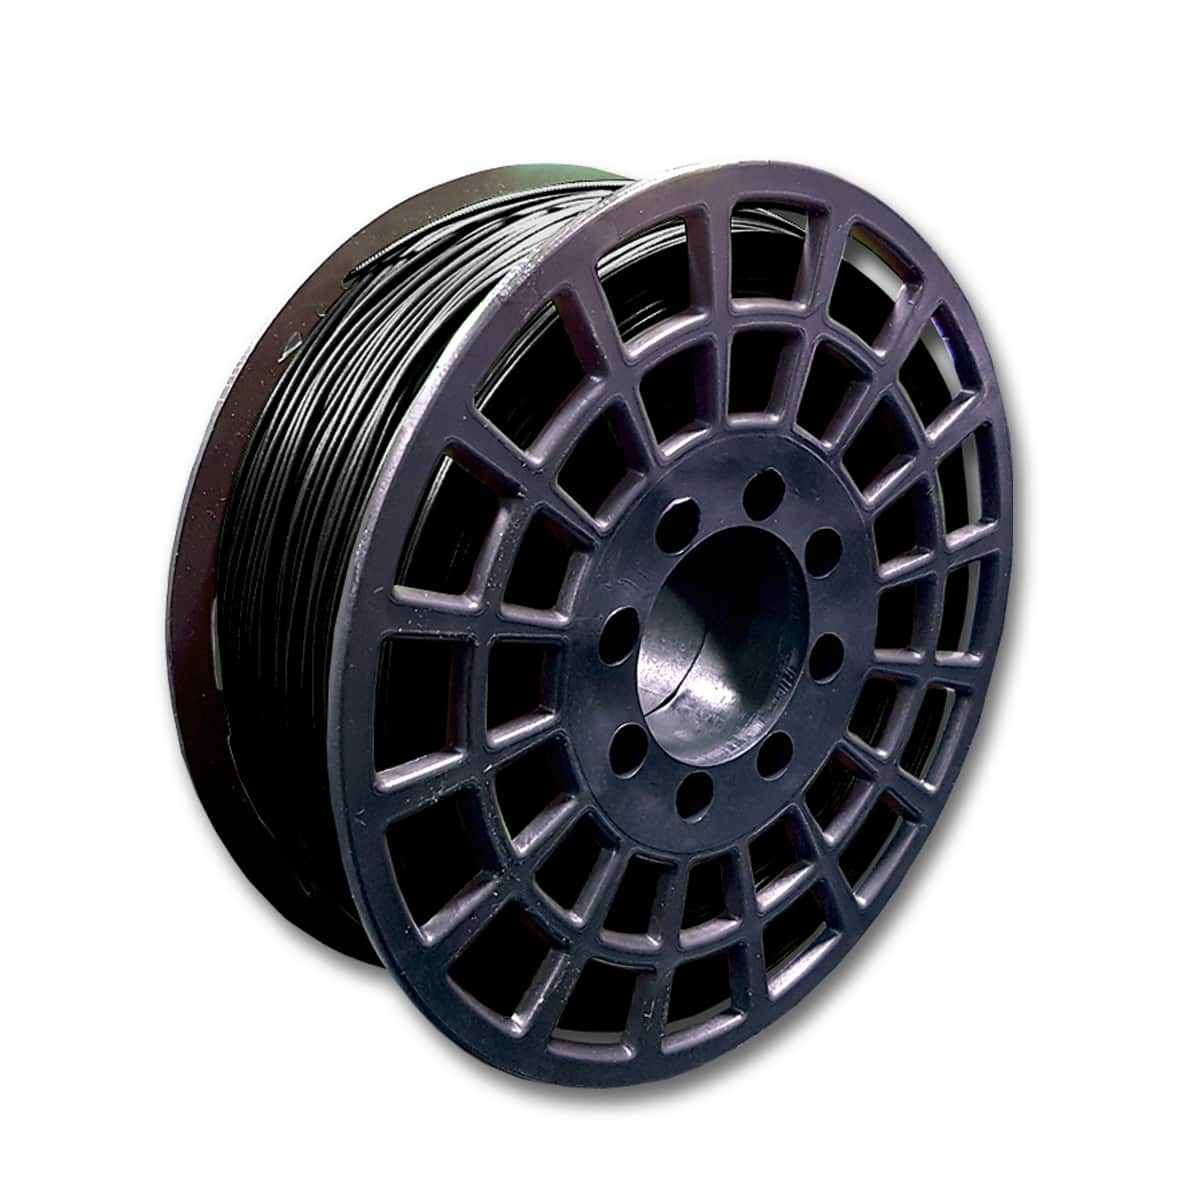 3D PLA+ 3D Printer Filament $14.99 1kg each when you buy 6 or more, FREE SHIPPING